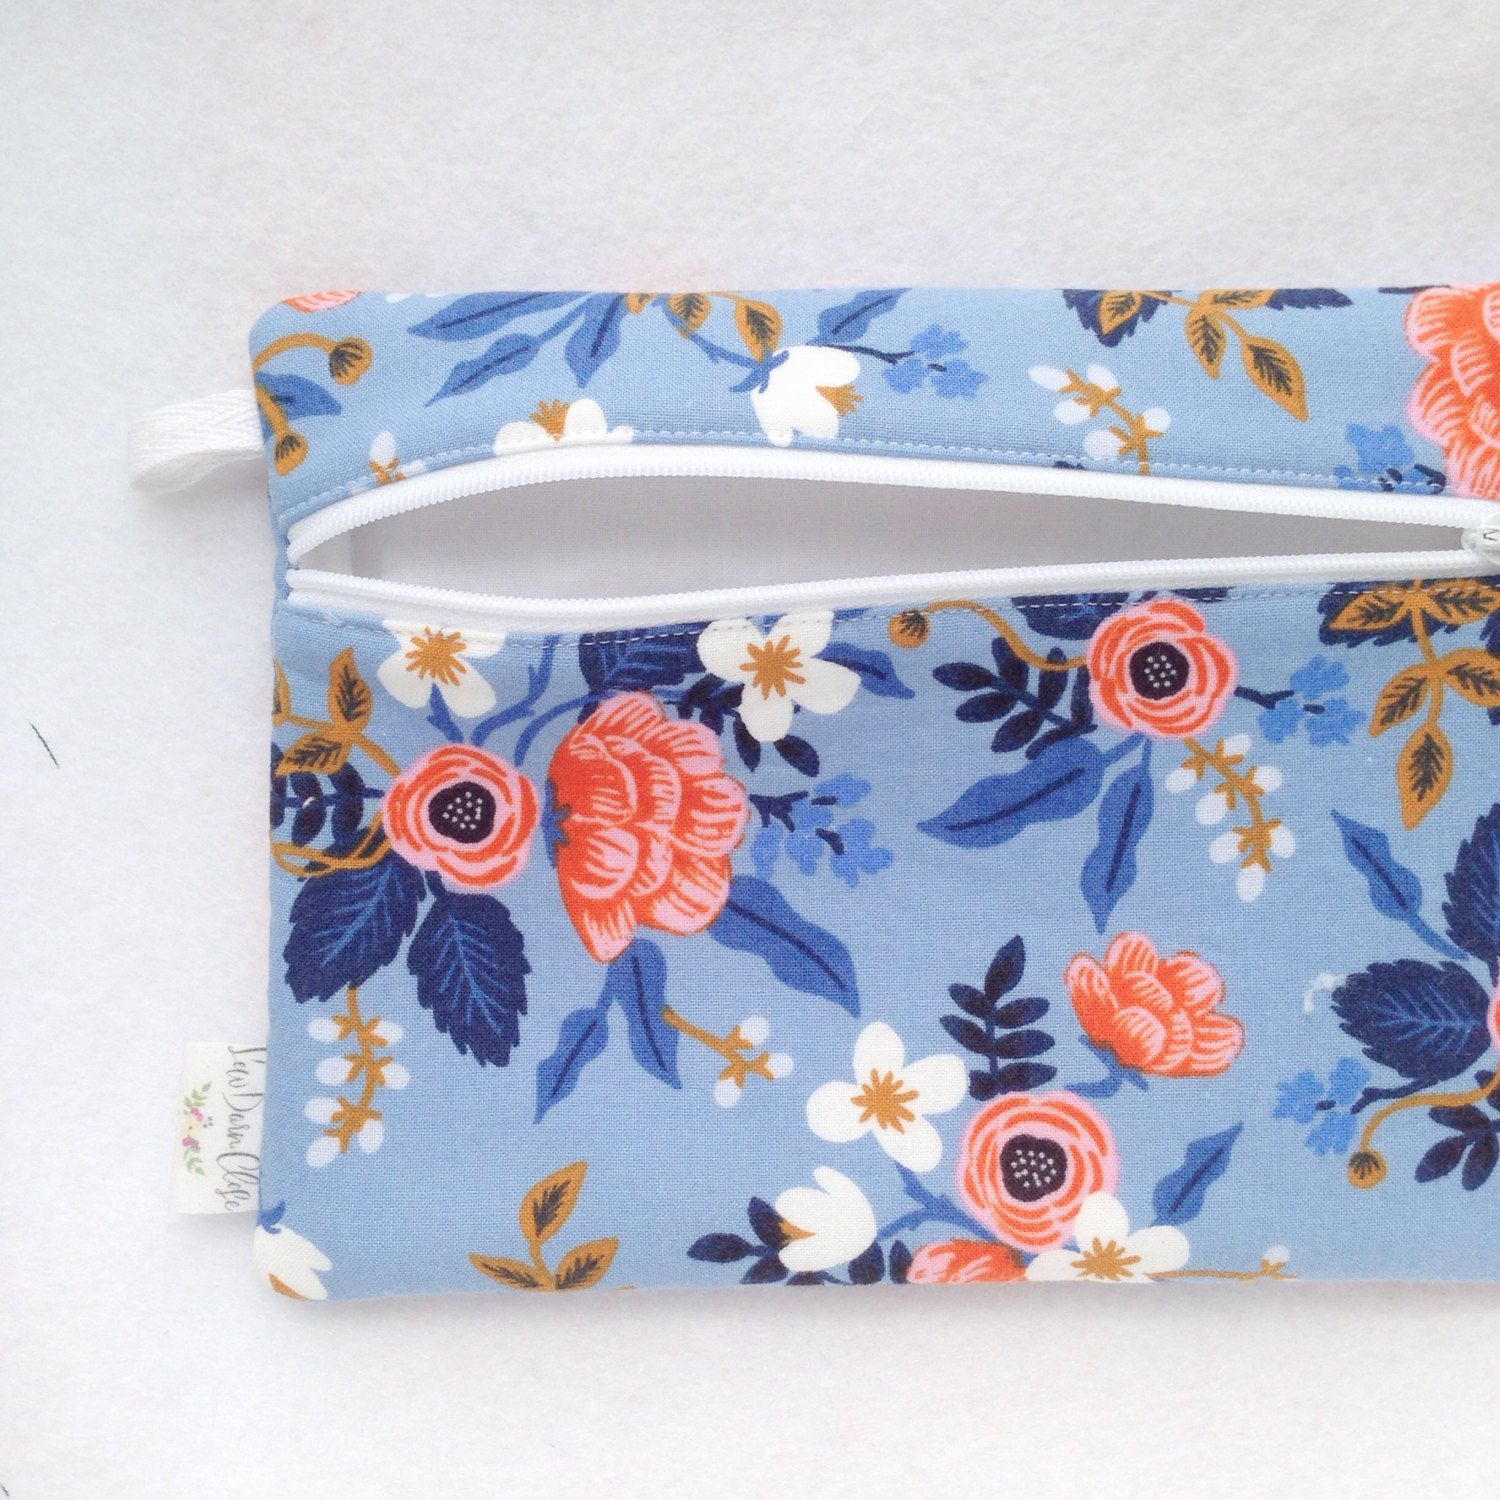 Measures approximately 8 x 6  Perfect for storing pens, pencils or other art, school, or office supplies, make up, or other small items.  Features a covered button zipper pull and small loop for grasping while unzipping or hooking onto something.  *this item is made-to-order *pattern placement may